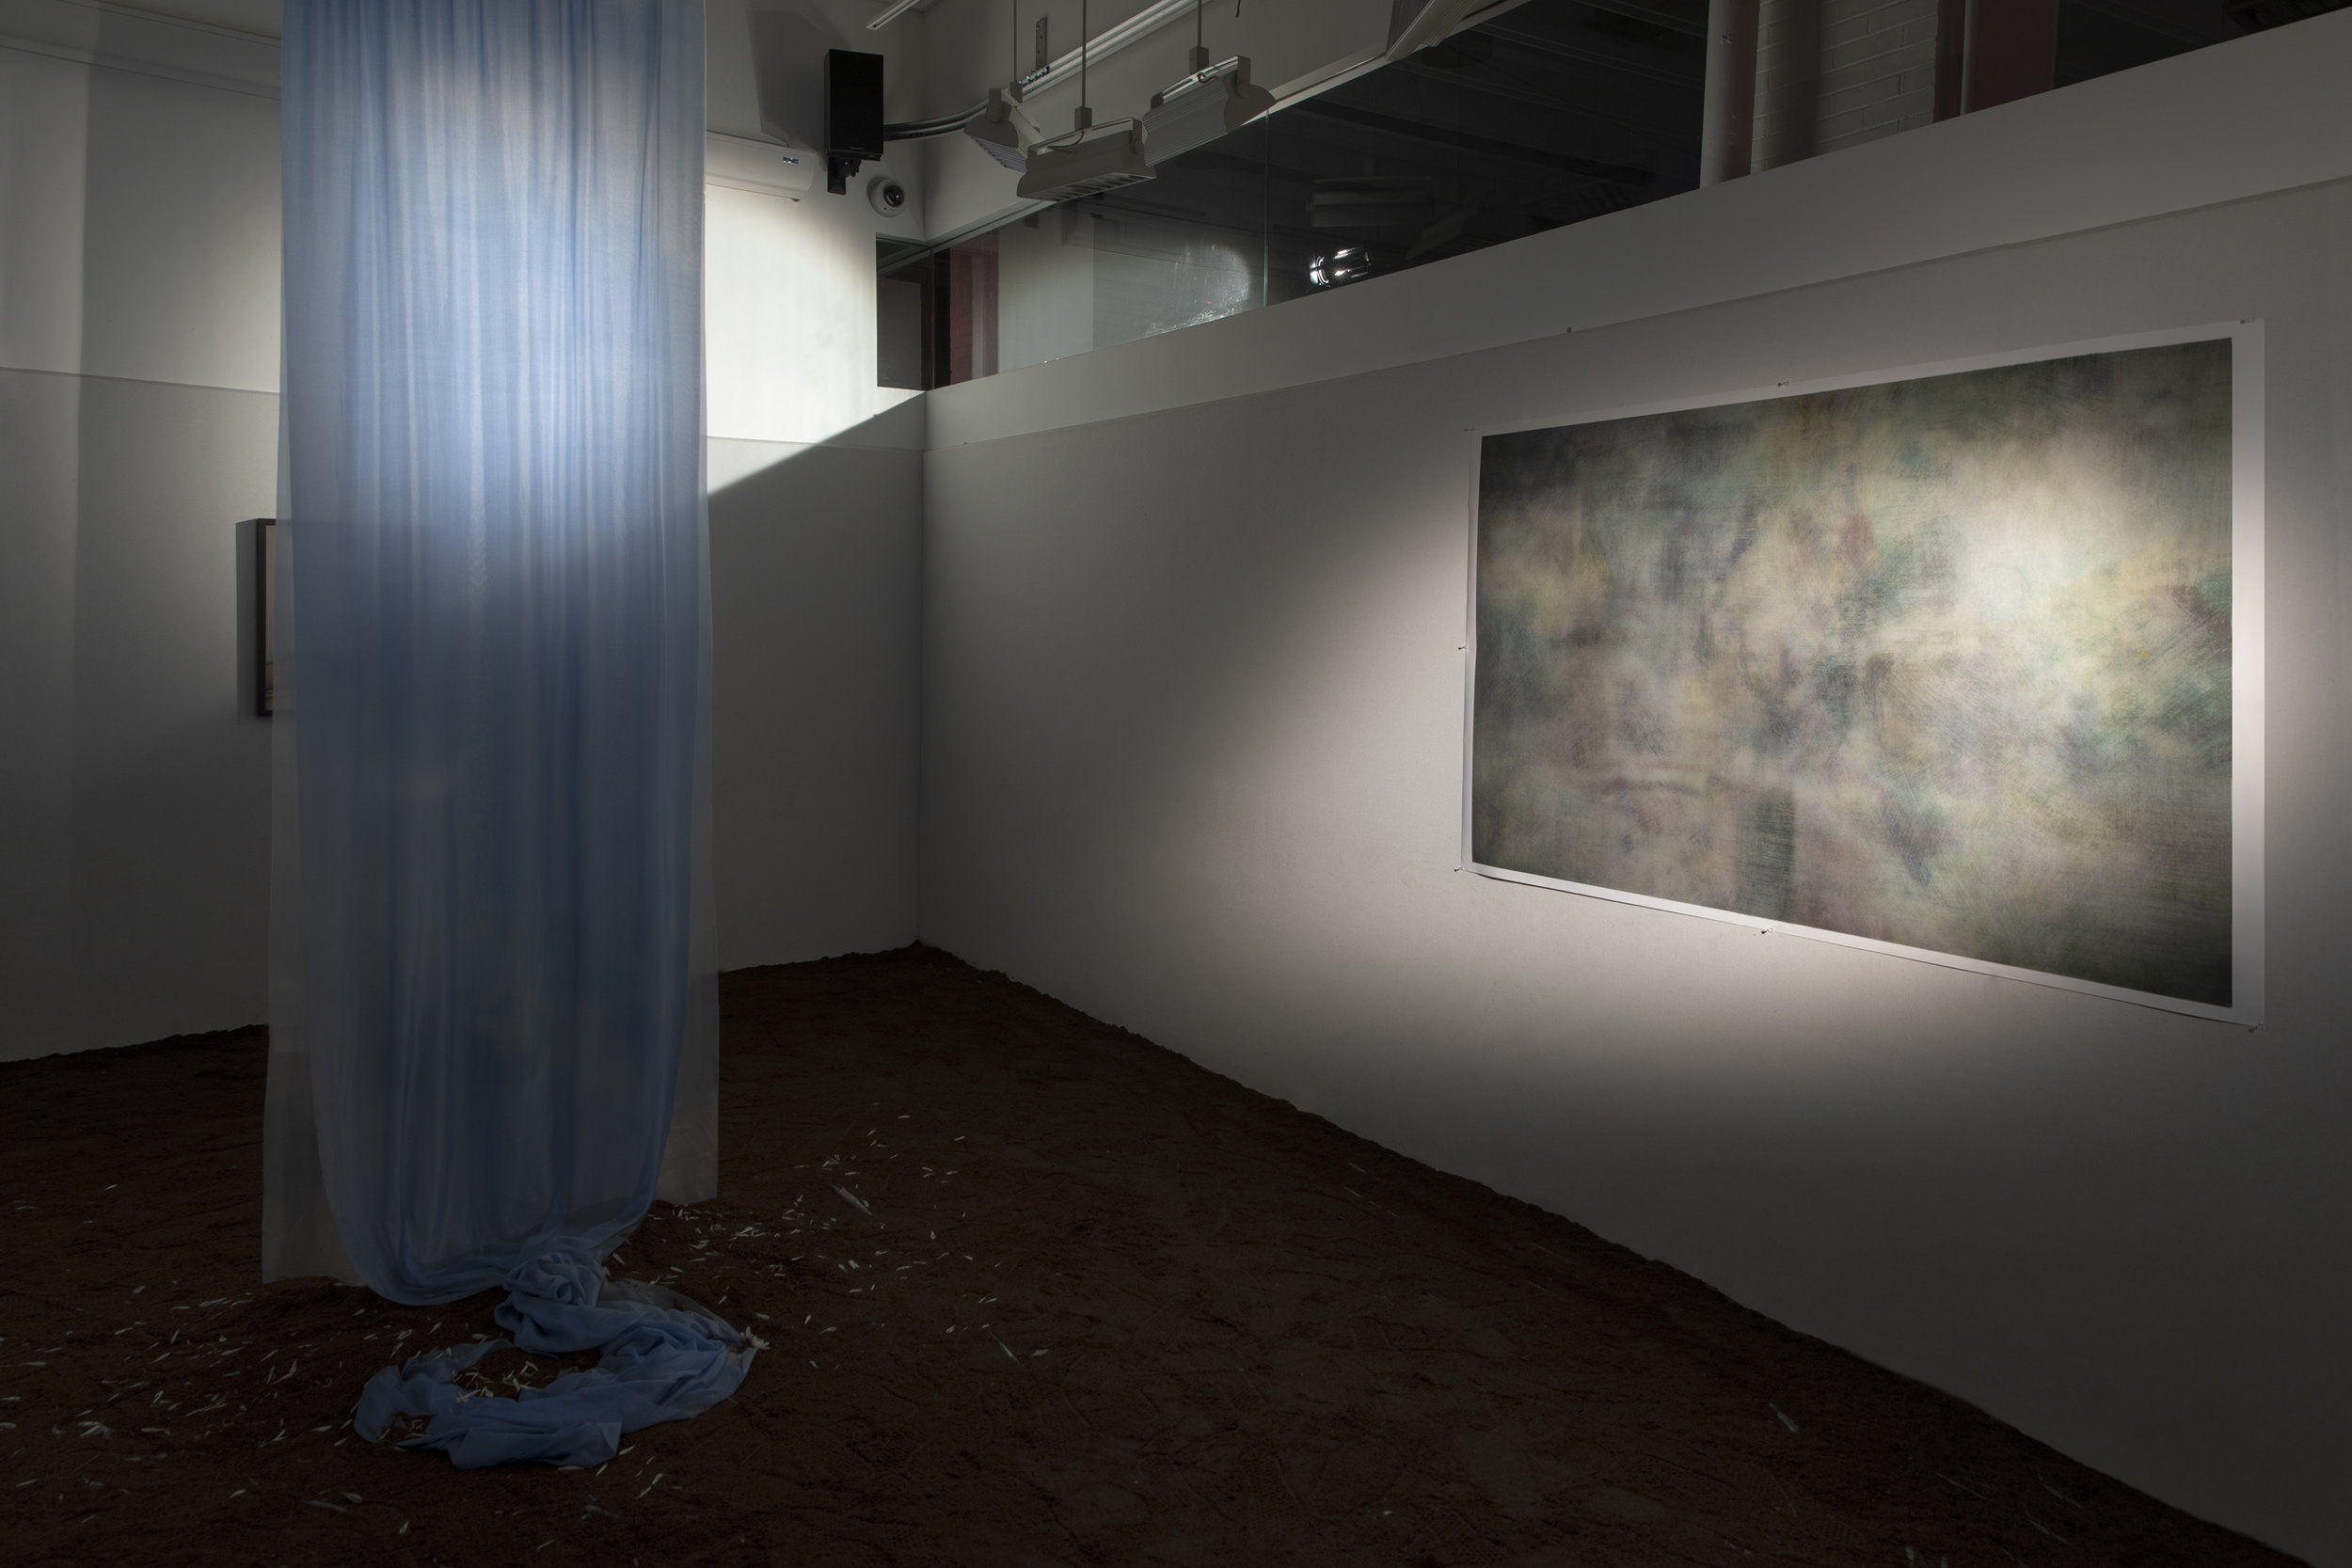 Installation Image for  Vestige , 2019  Mixed Media (Silk Habotai, Pigment, Dirt, Ashes of Incense Sticks, Crysanthemum Petals, Framed Images with Archival Inkject Print)